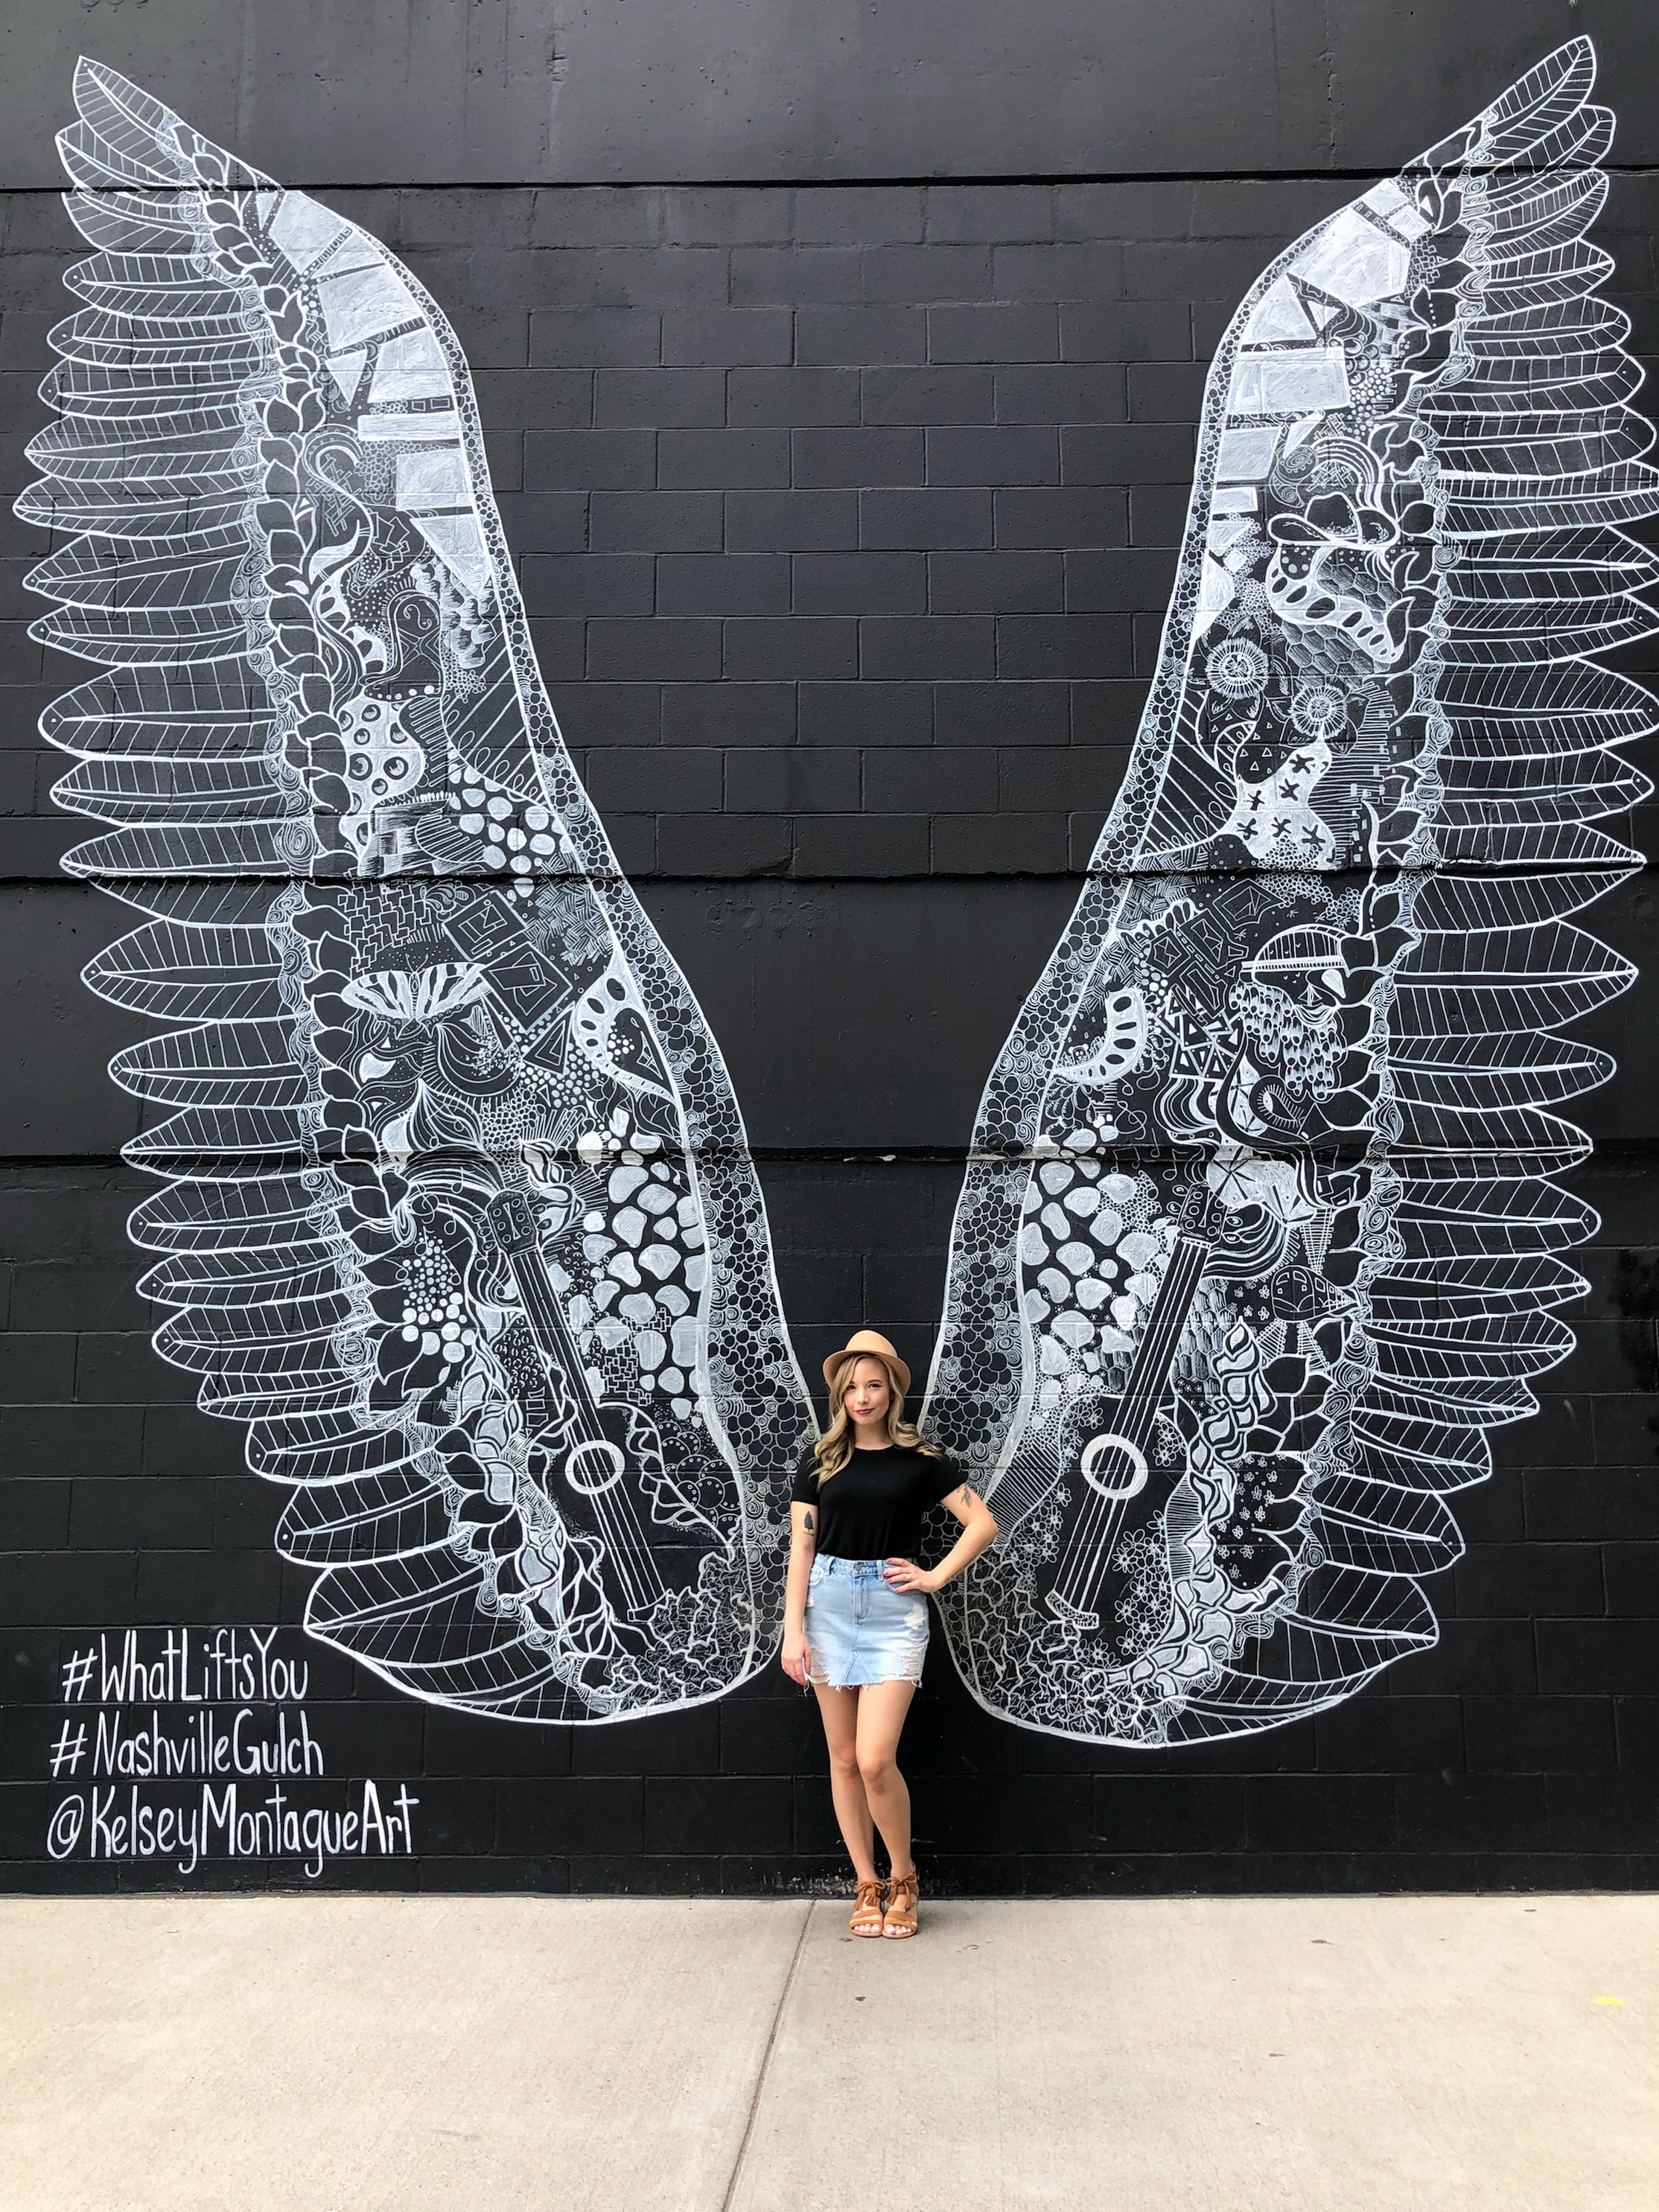 5 Nashville Murals You Must Visit